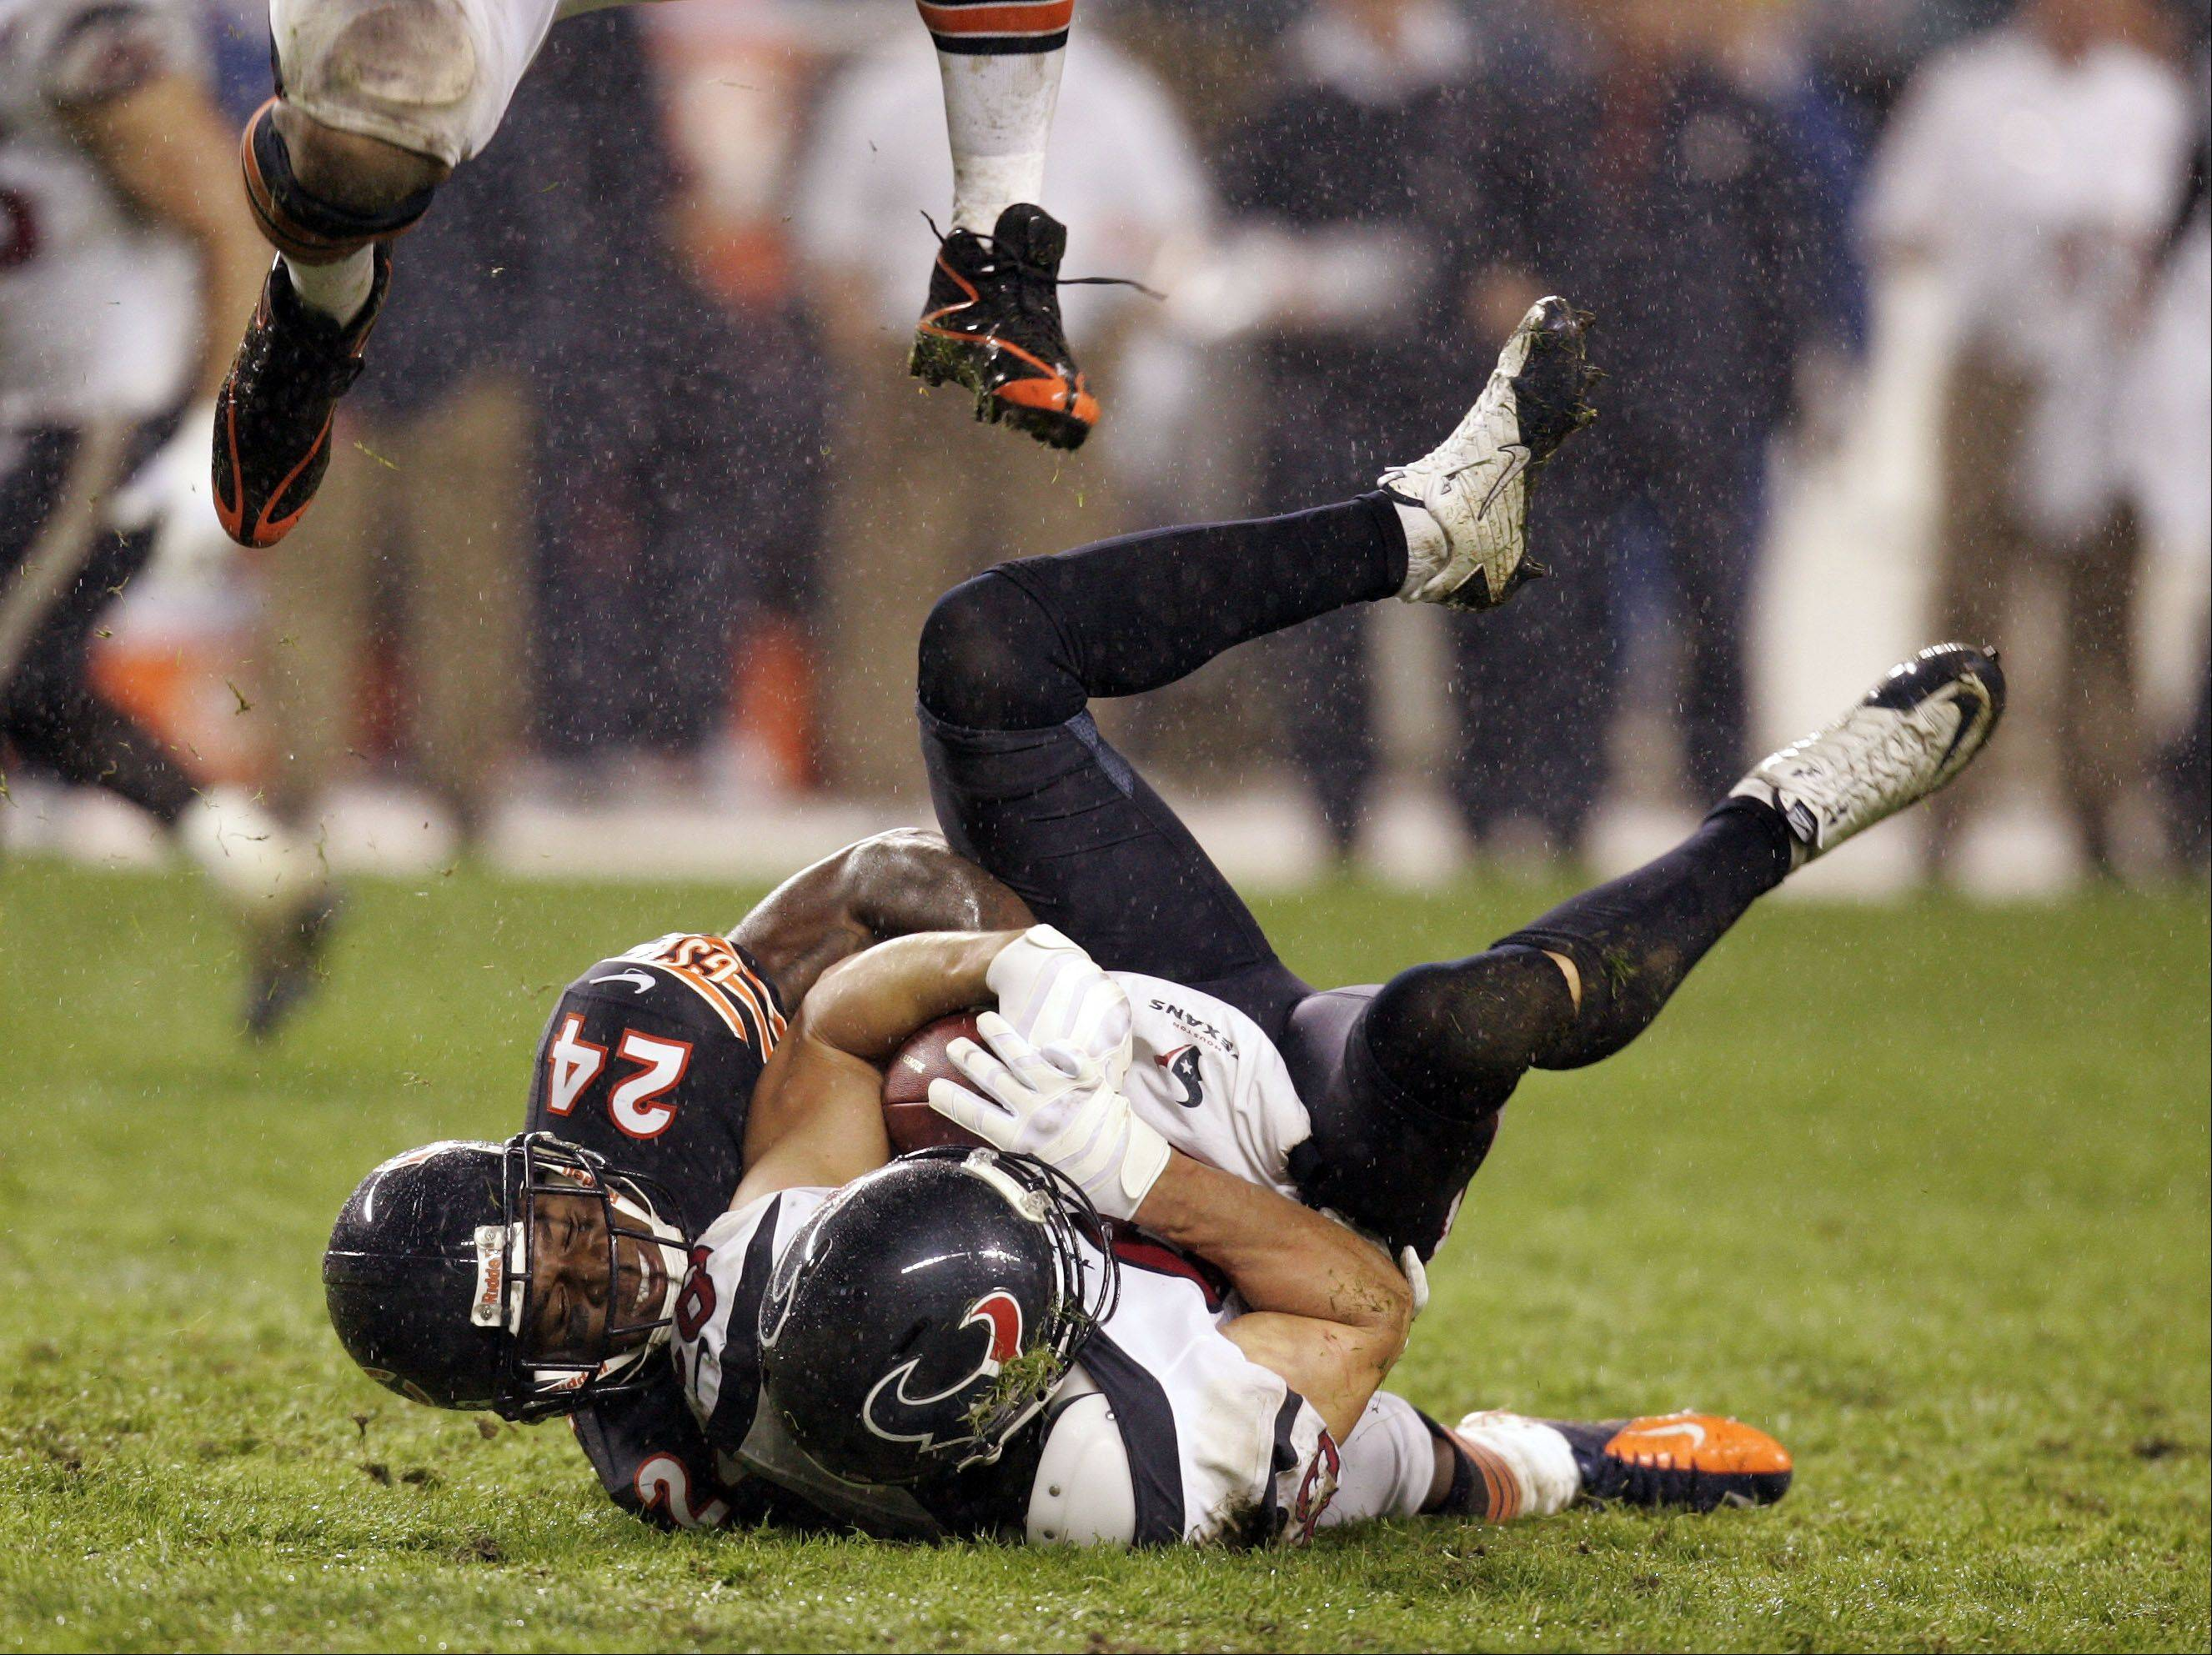 Chicago Bears cornerback Kelvin Hayden (24) pulls down Houston Texans wide receiver Kevin Walter (83) during the game.